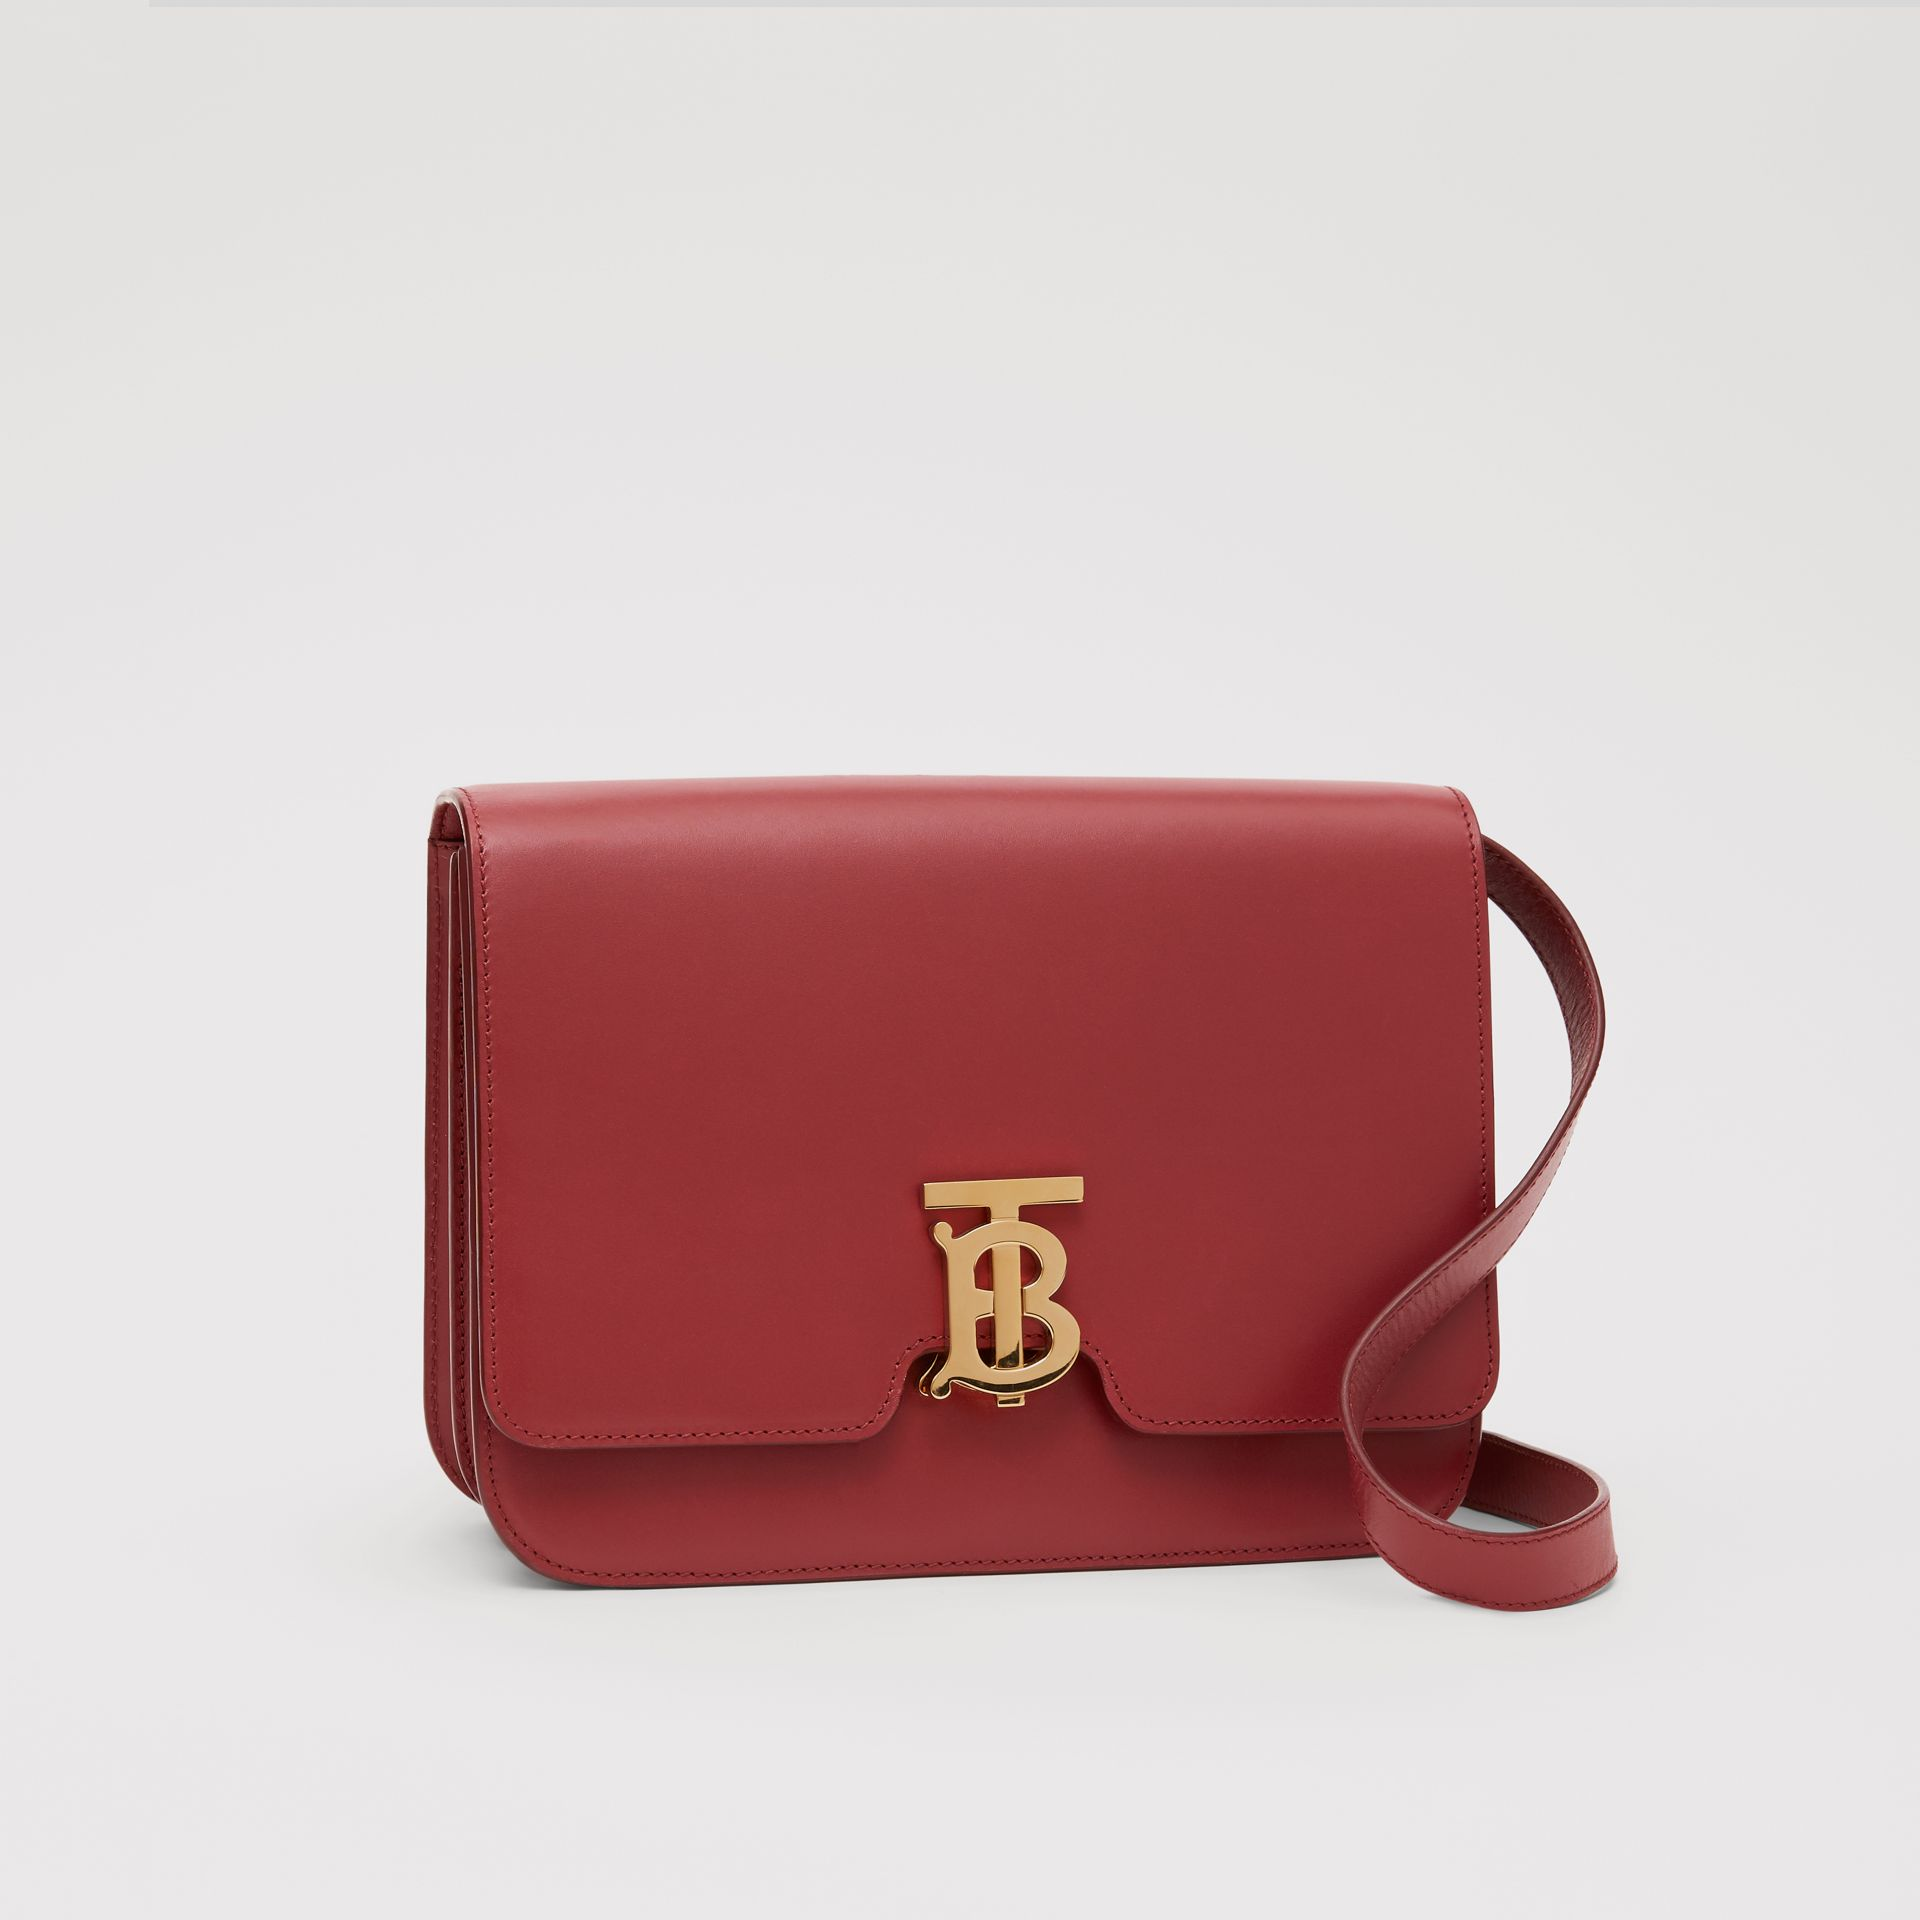 Medium Leather TB Bag in Crimson - Women | Burberry Canada - gallery image 6